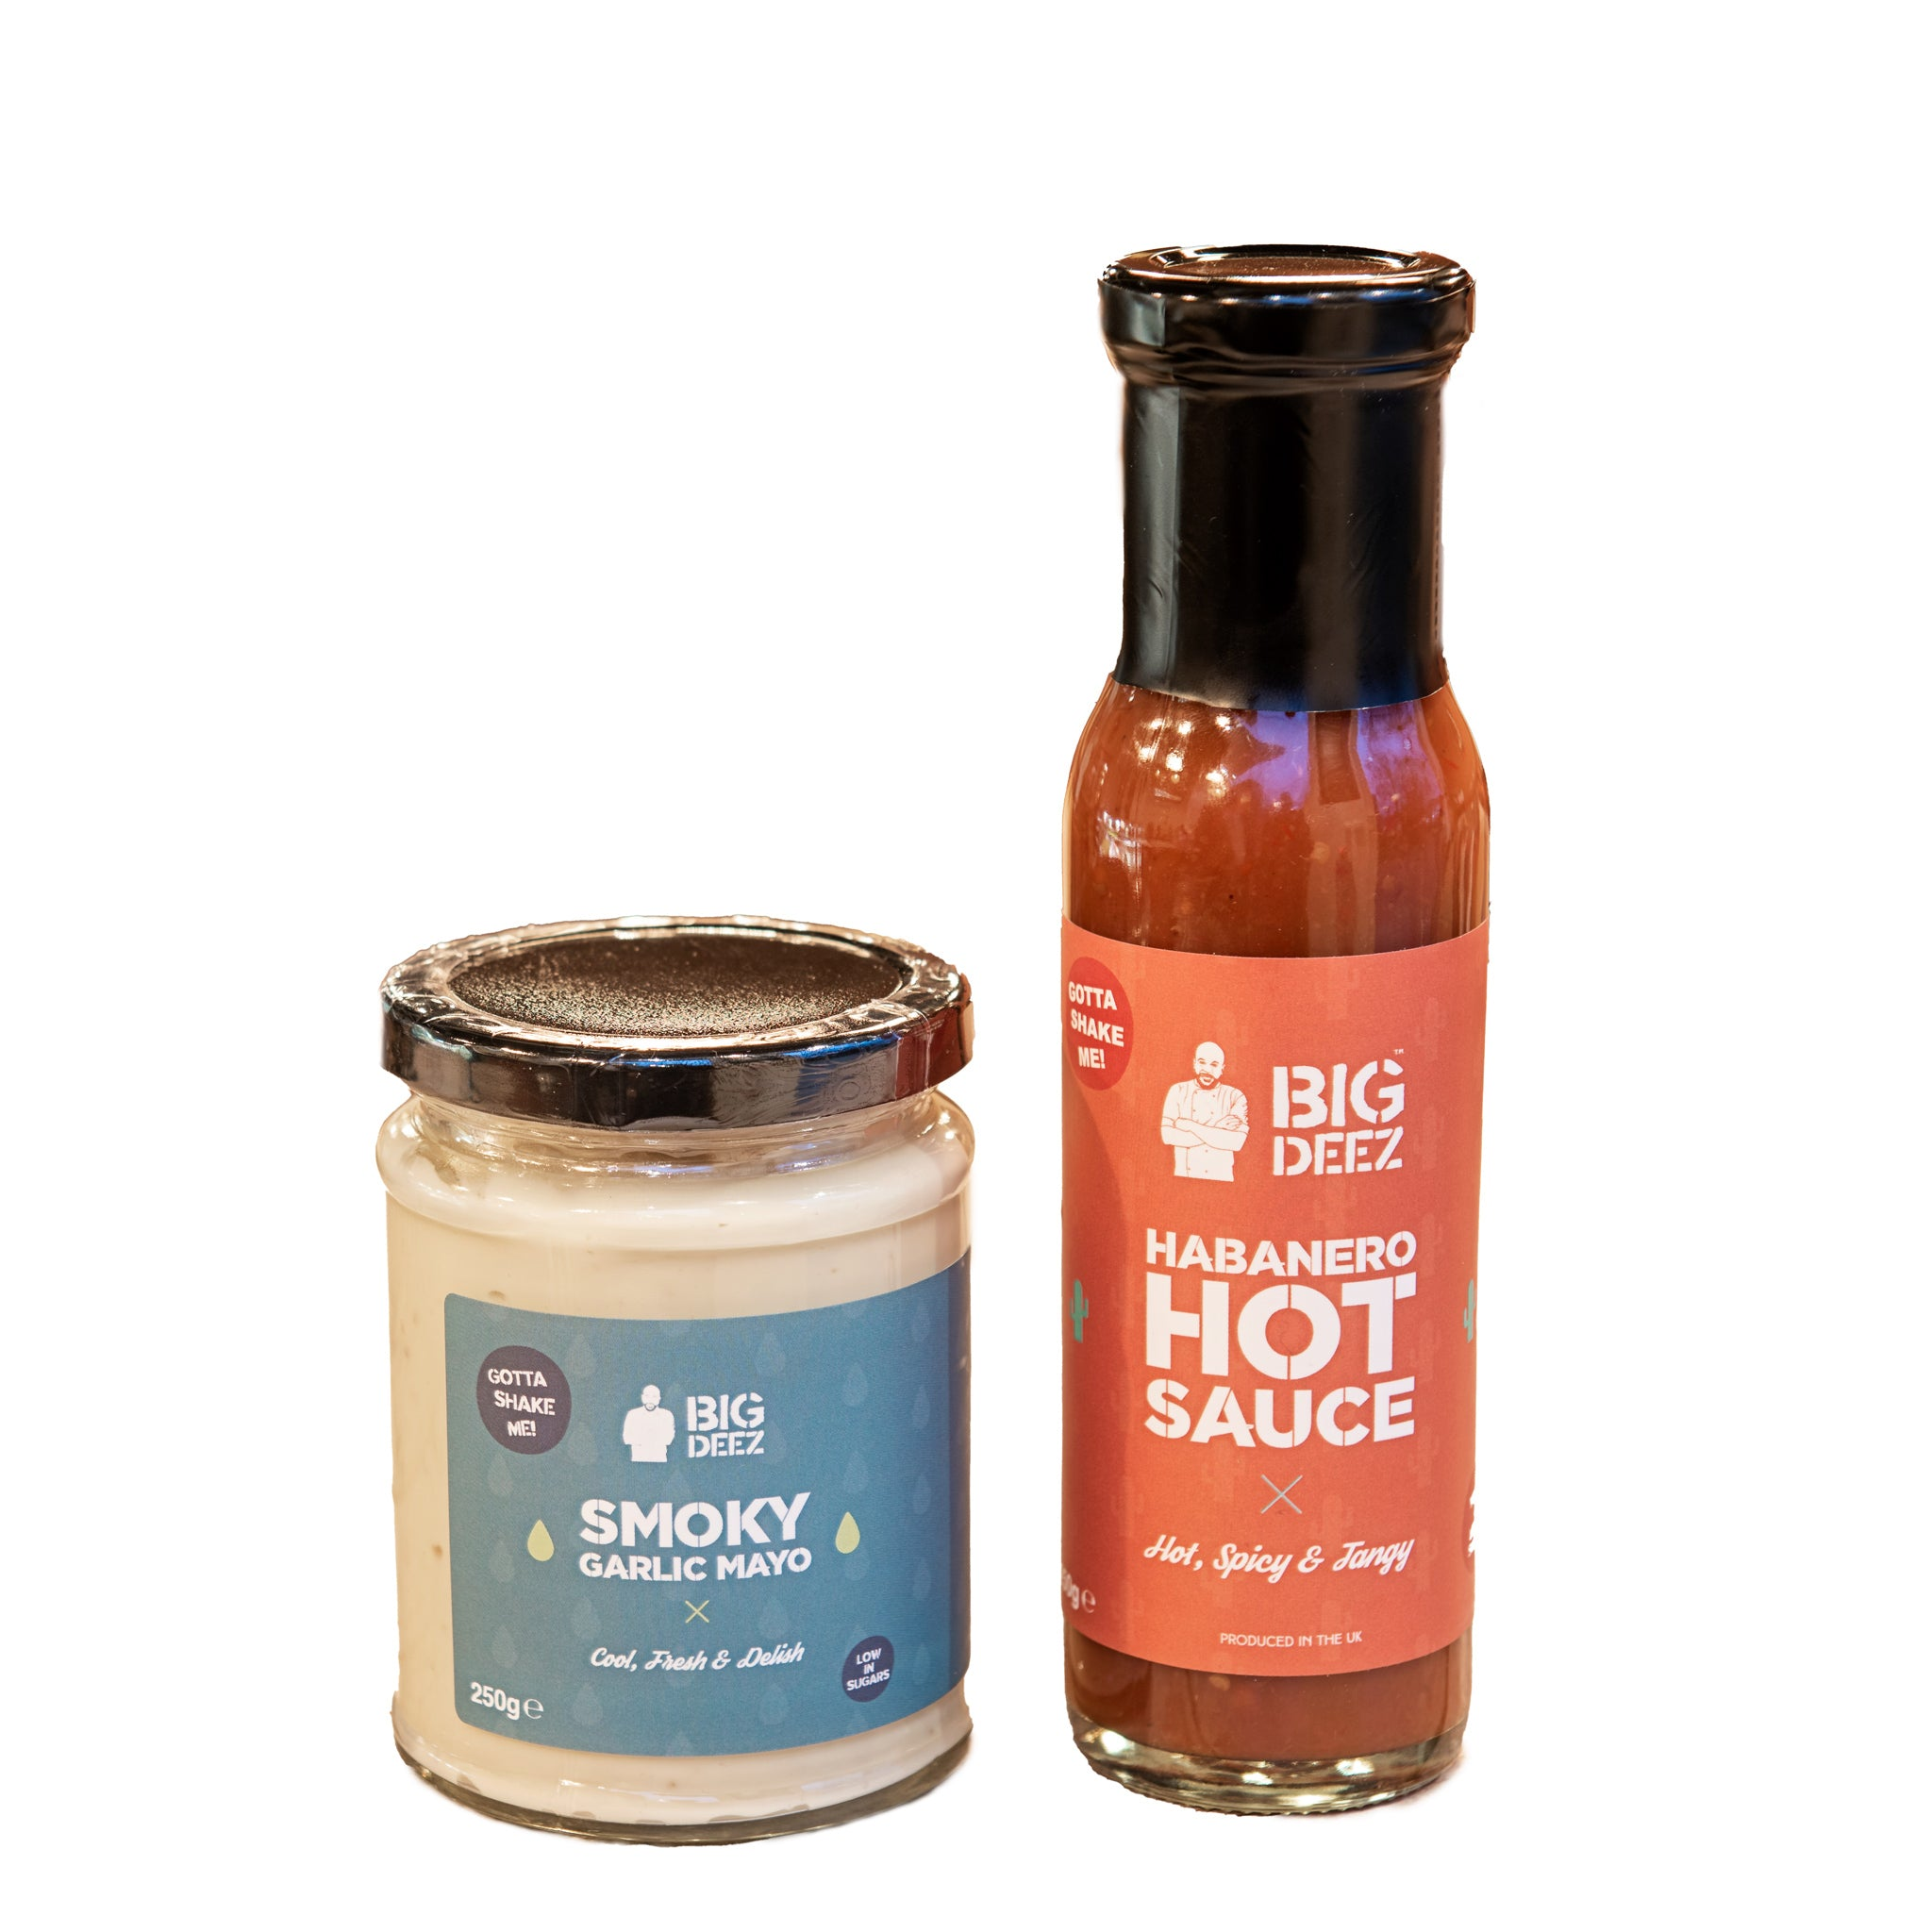 Big Deez Hot Sauce & Smoky Garlic Mayo